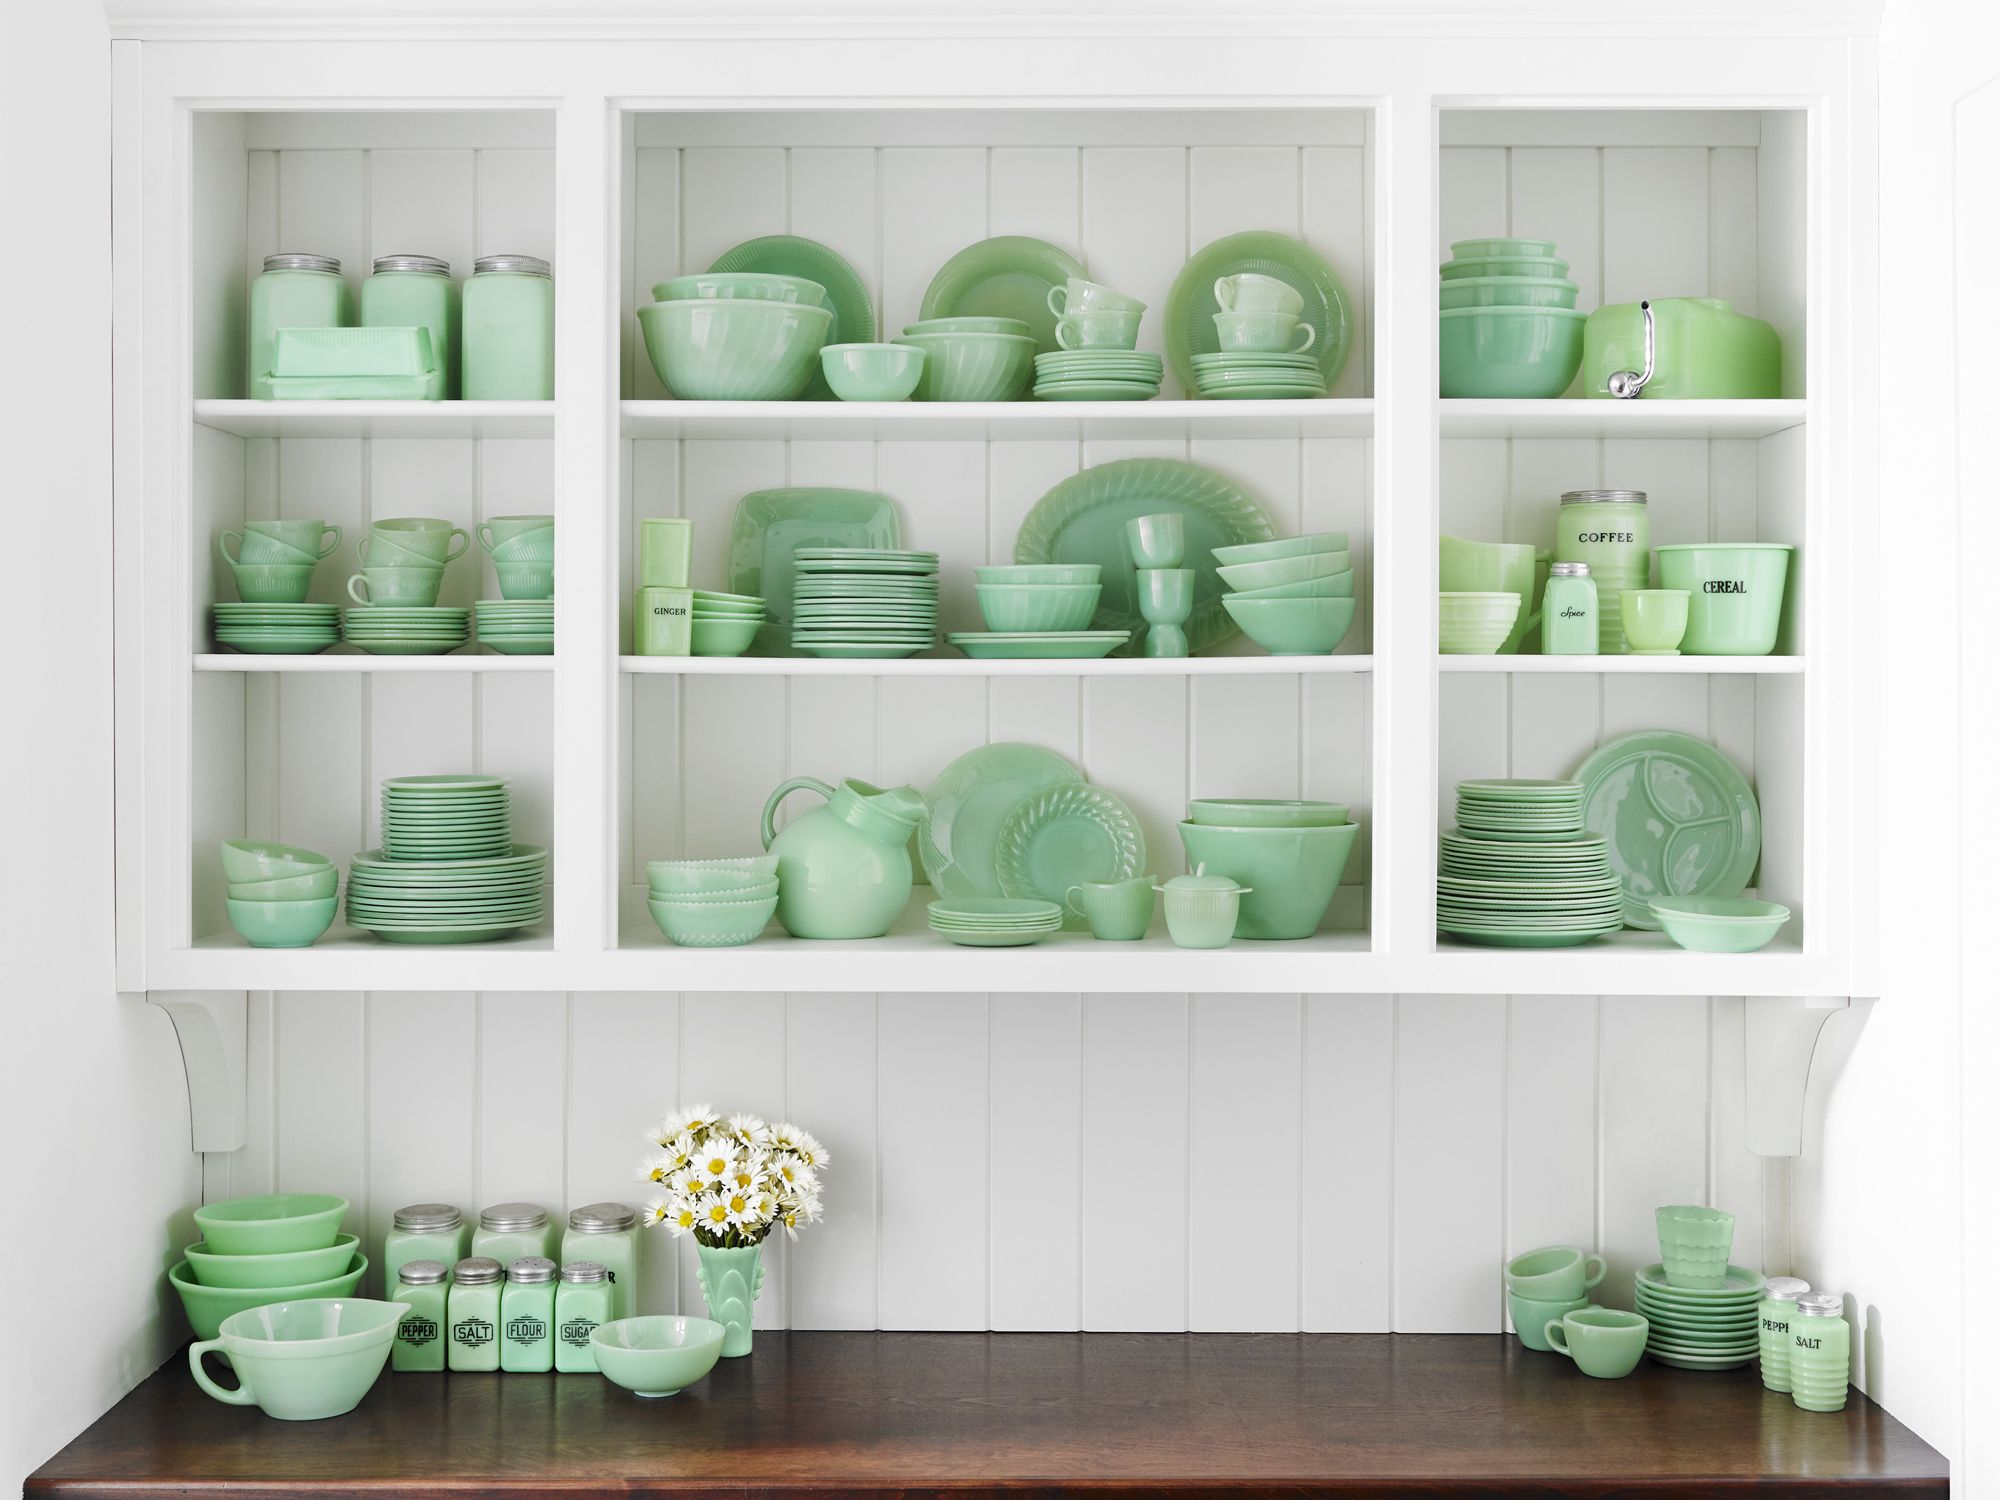 15 Vintage Décor Ideas to Steal From Grandma's House - Jadeite Collection